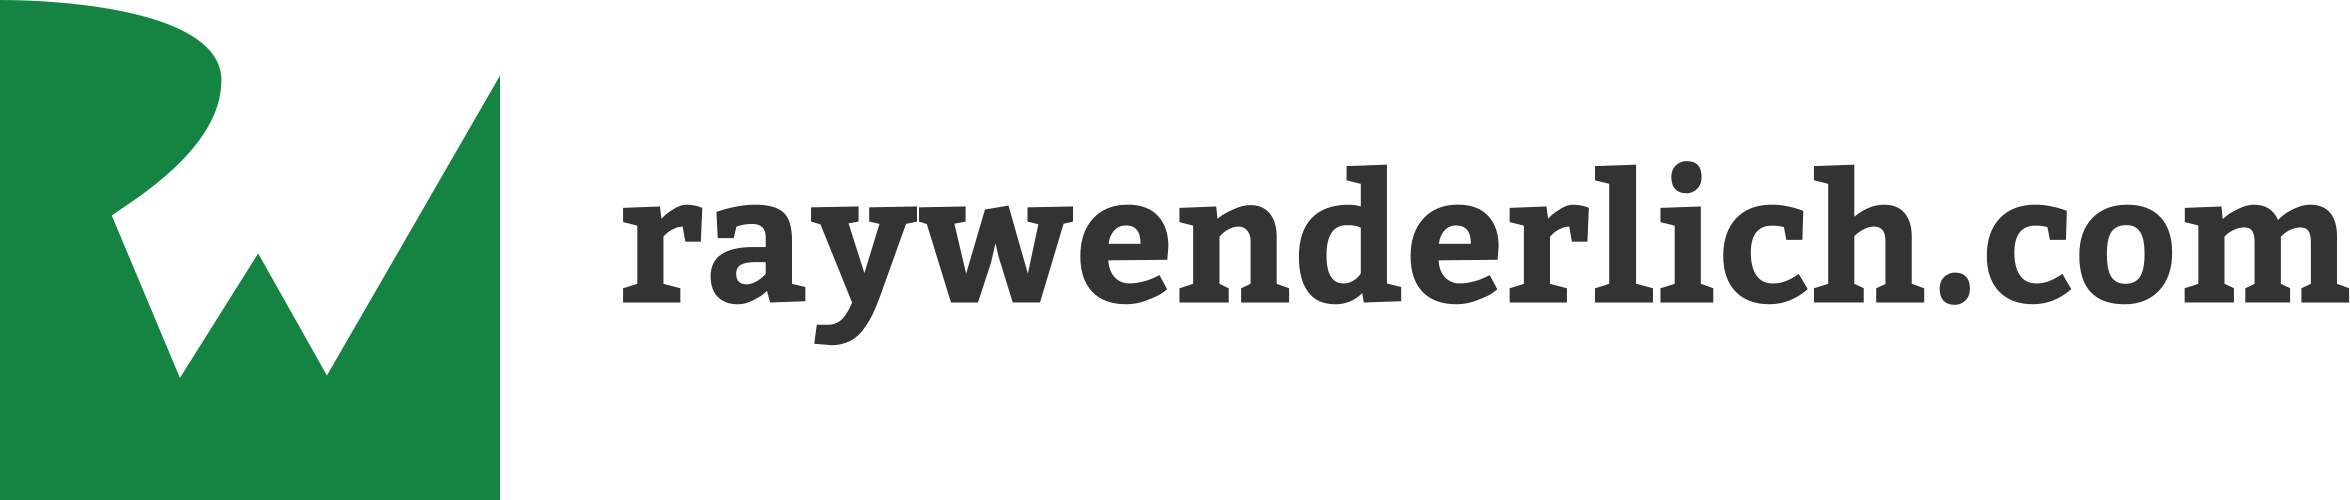 raywenderlich.com, the most popular iOS tutorial site on the Internet